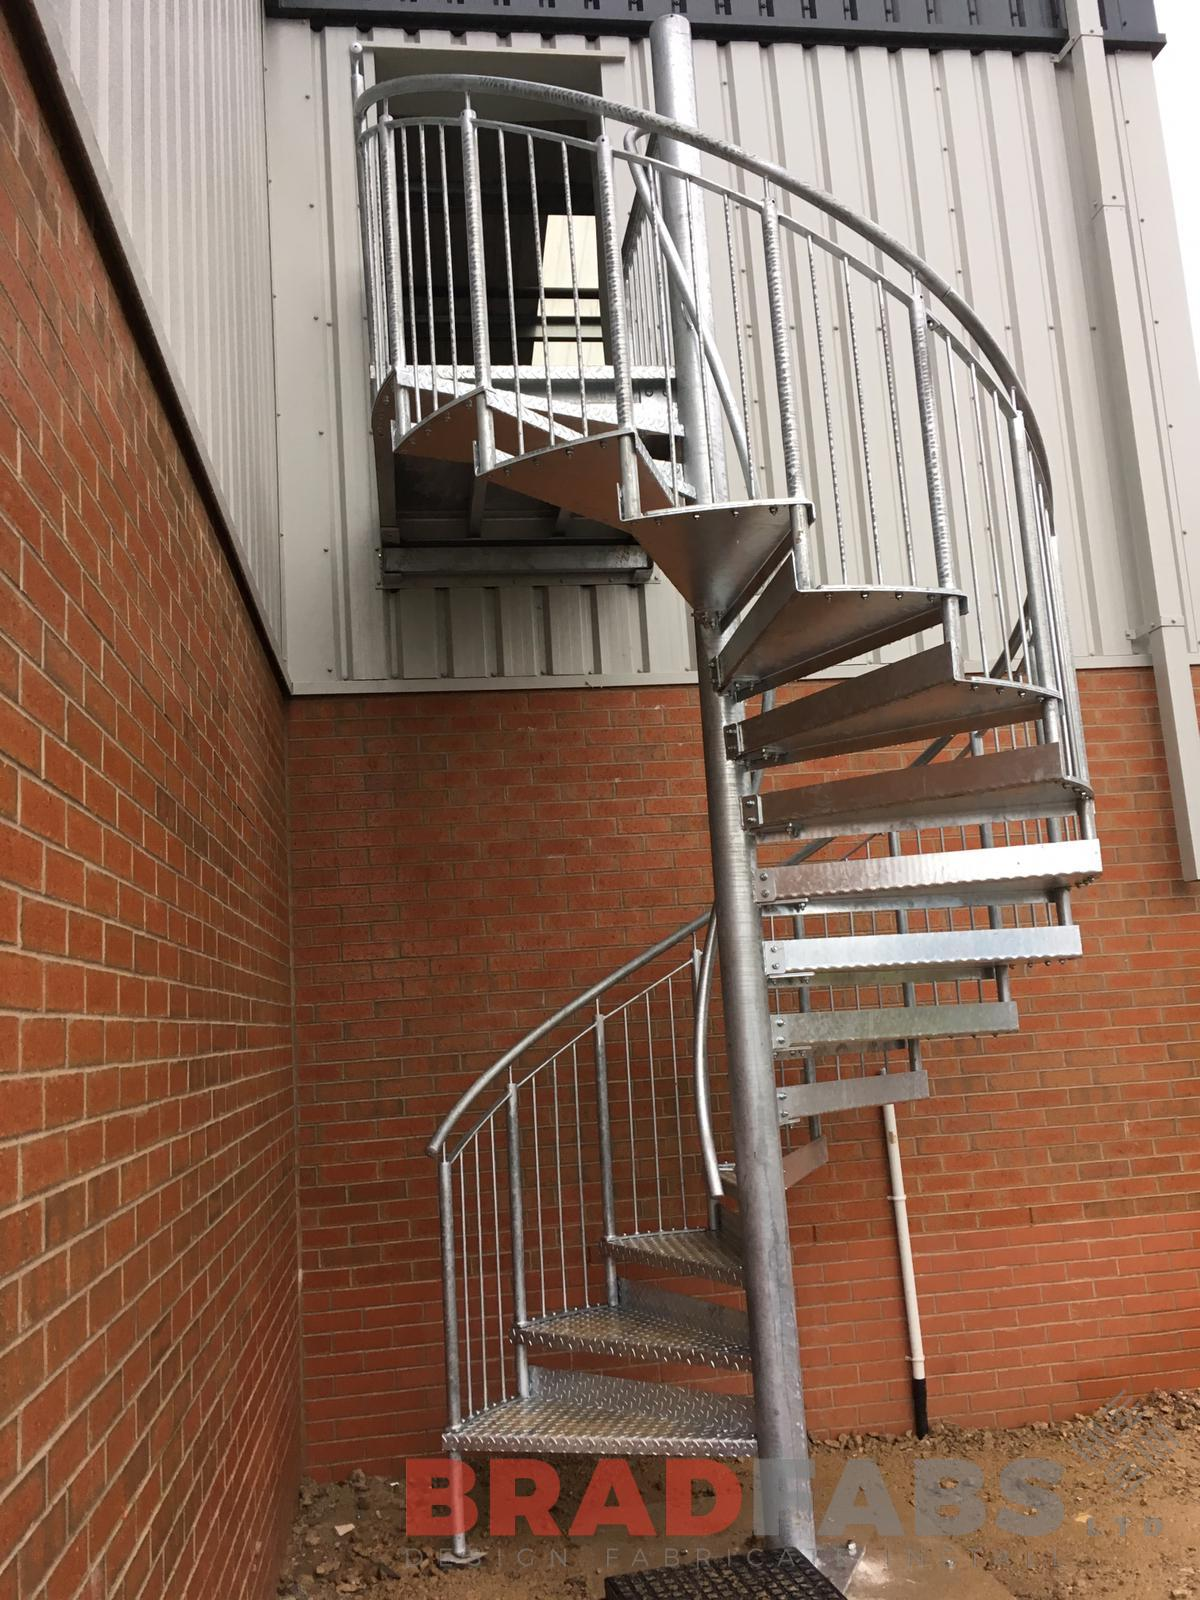 Mild steel and galvanised bespoke spiral fire escape with vertical bar balustrade and durbar treads, complete with a landing at the top by Bradfabs